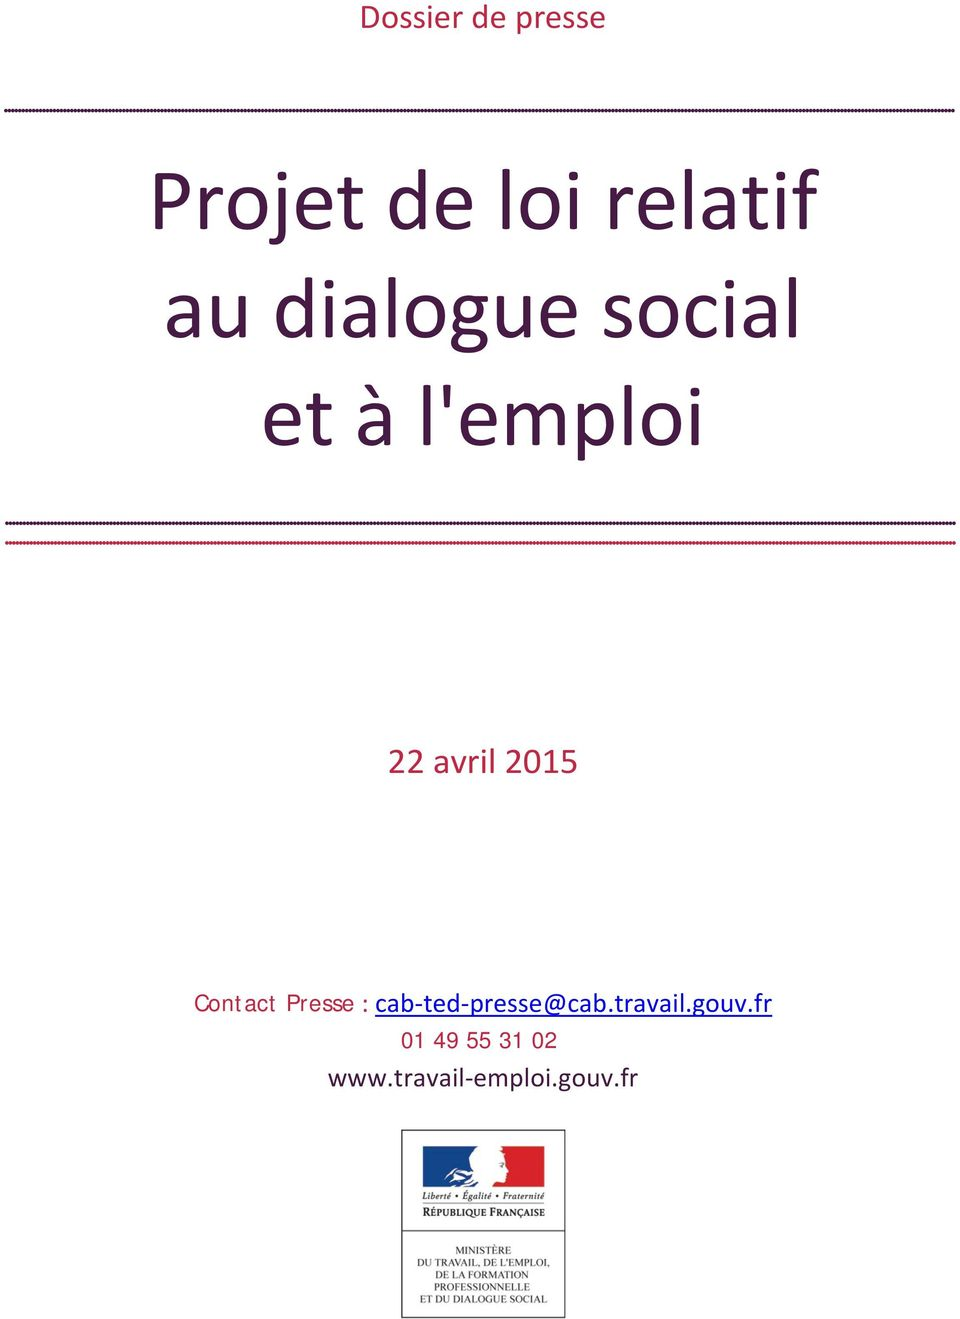 Contact Presse : cab-ted-presse@cab.travail.